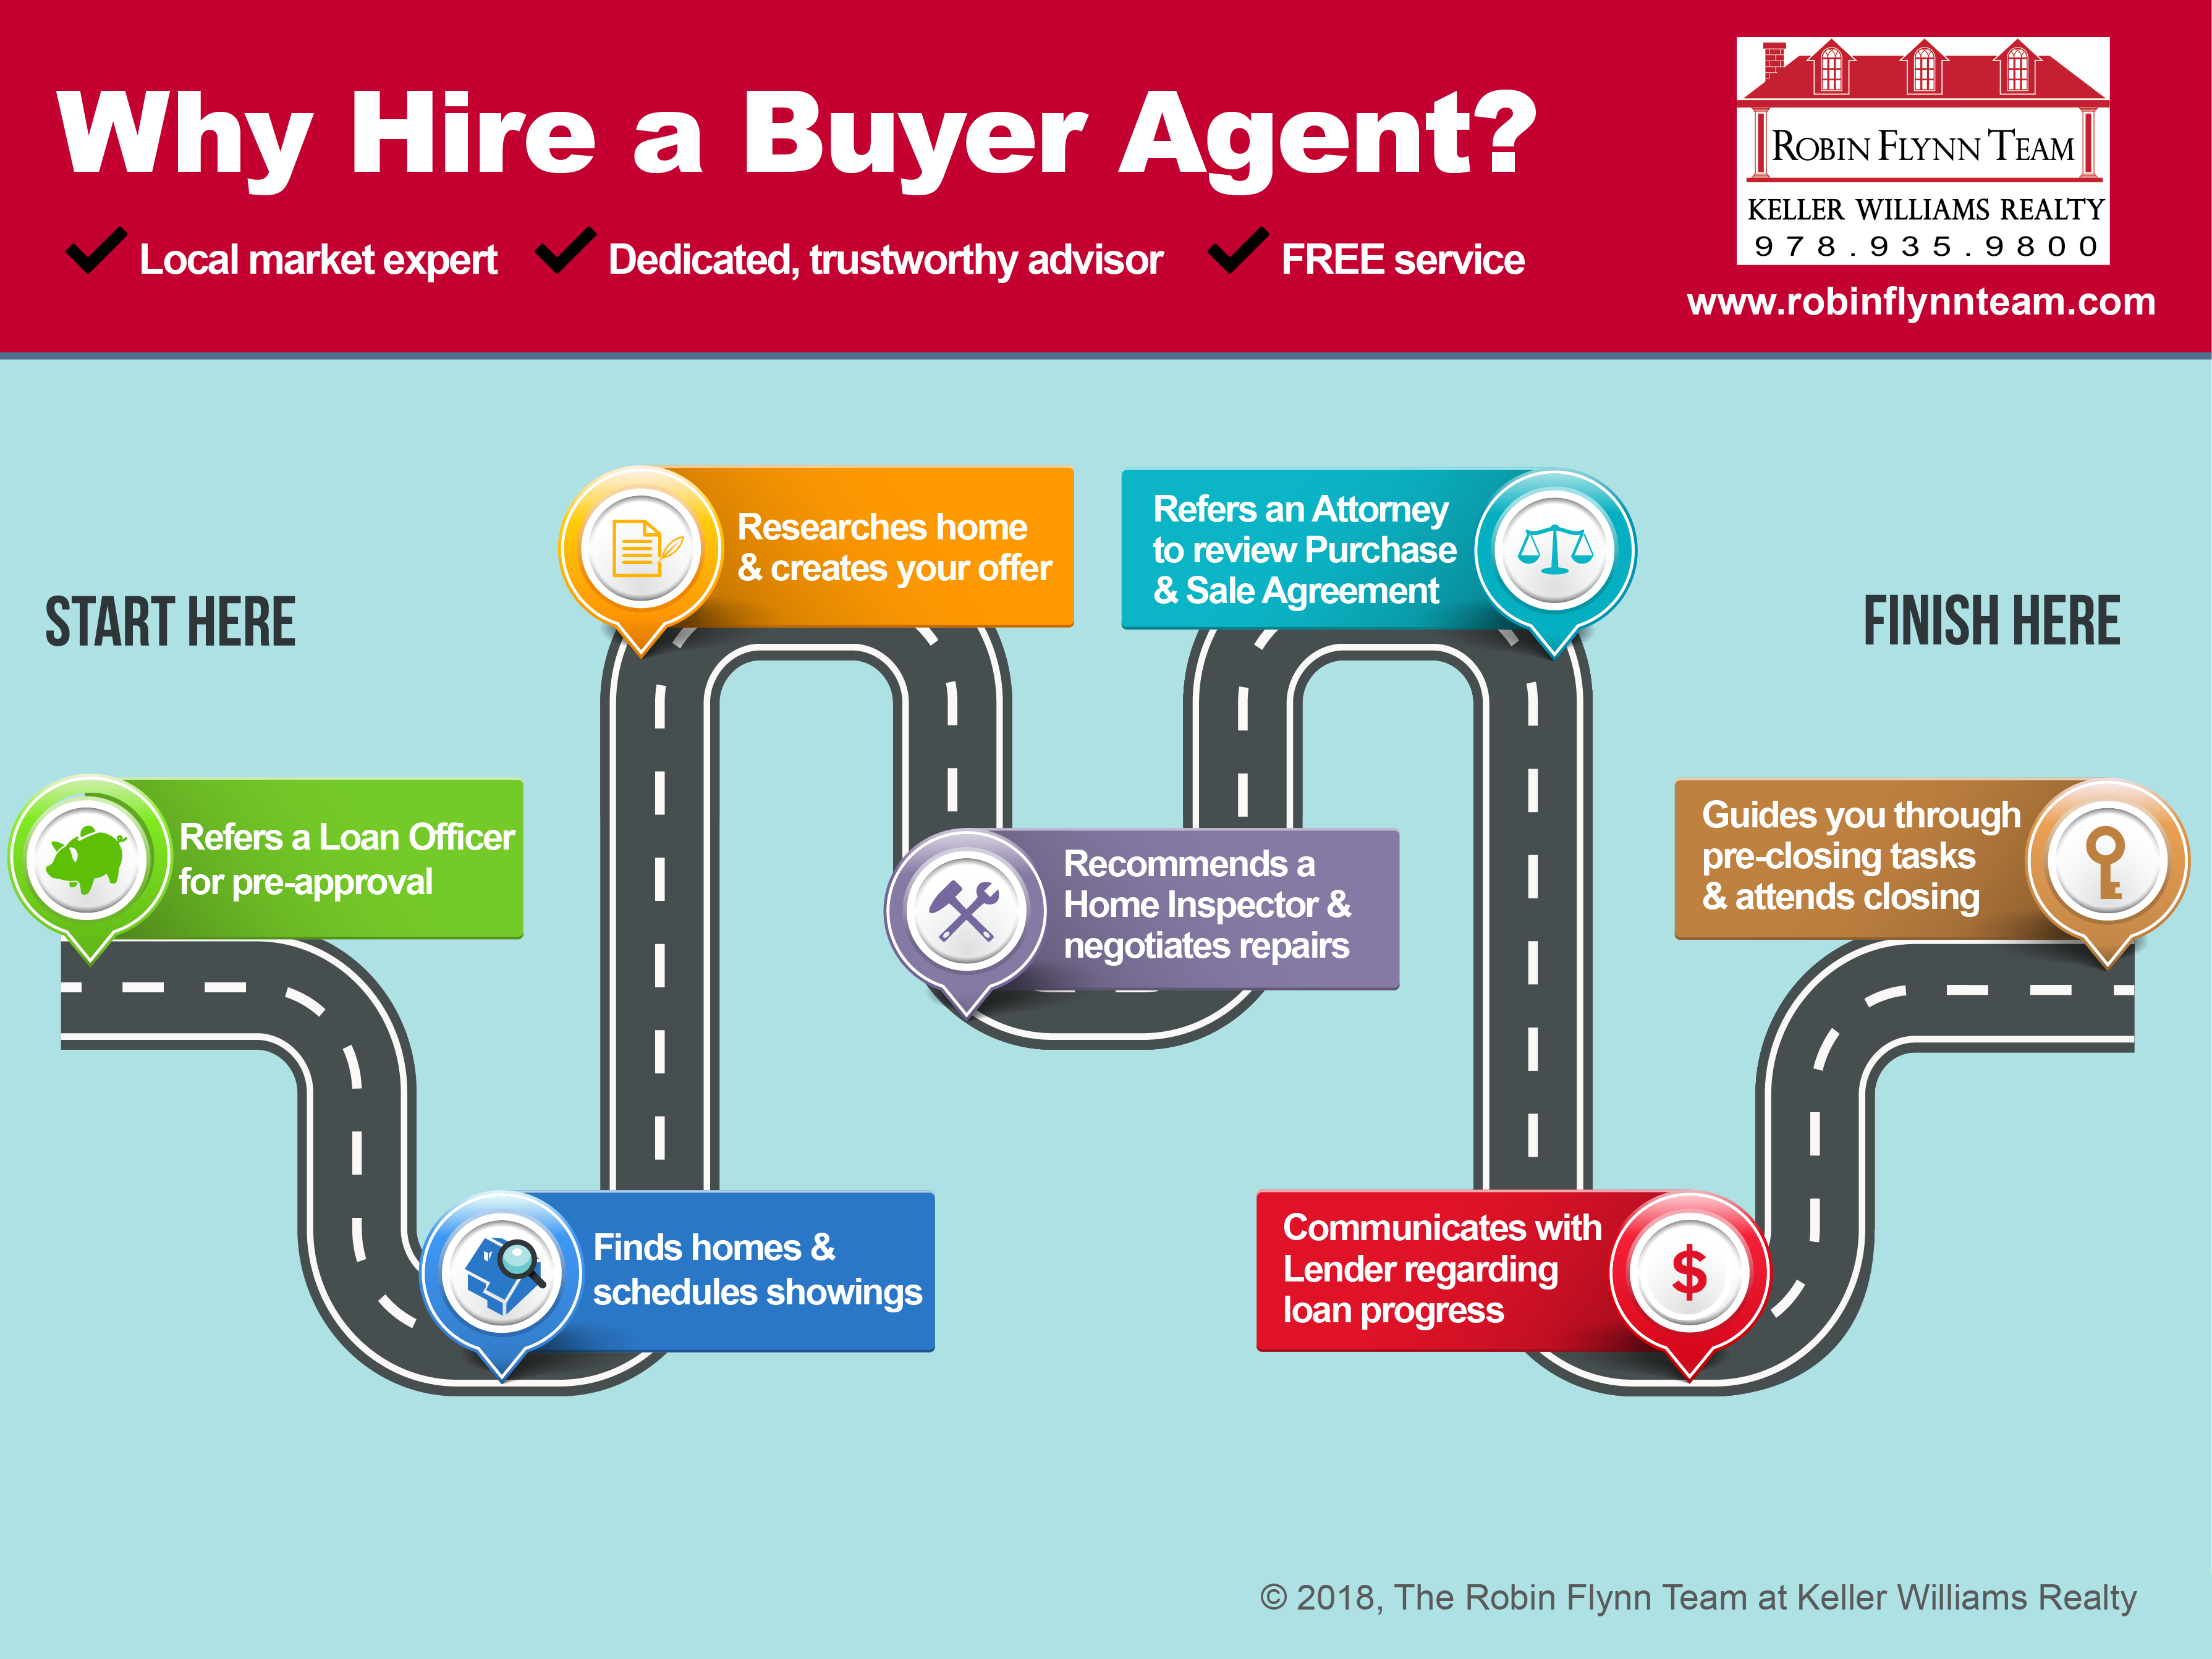 Why Hire a Buyer Agent